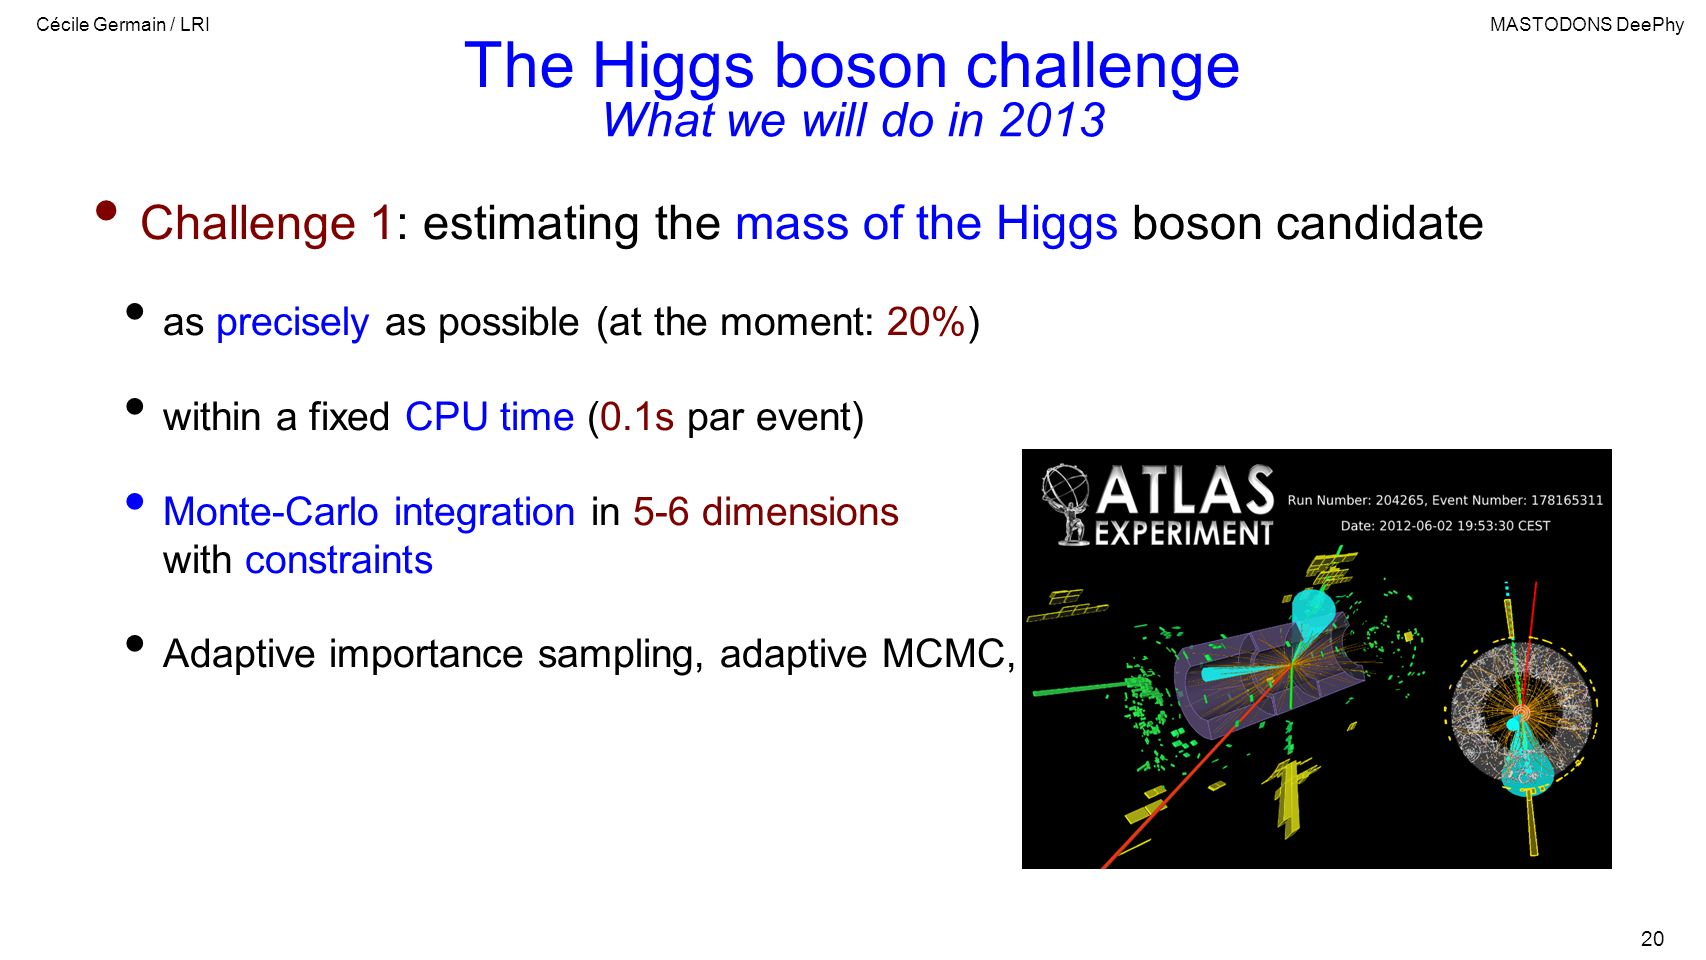 Cécile Germain / LRIMASTODONS DeePhy 20 The Higgs boson challenge Challenge 1: estimating the mass of the Higgs boson candidate as precisely as possible (at the moment: 20%) within a fixed CPU time (0.1s par event) Monte-Carlo integration in 5-6 dimensions with constraints Adaptive importance sampling, adaptive MCMC, etc.